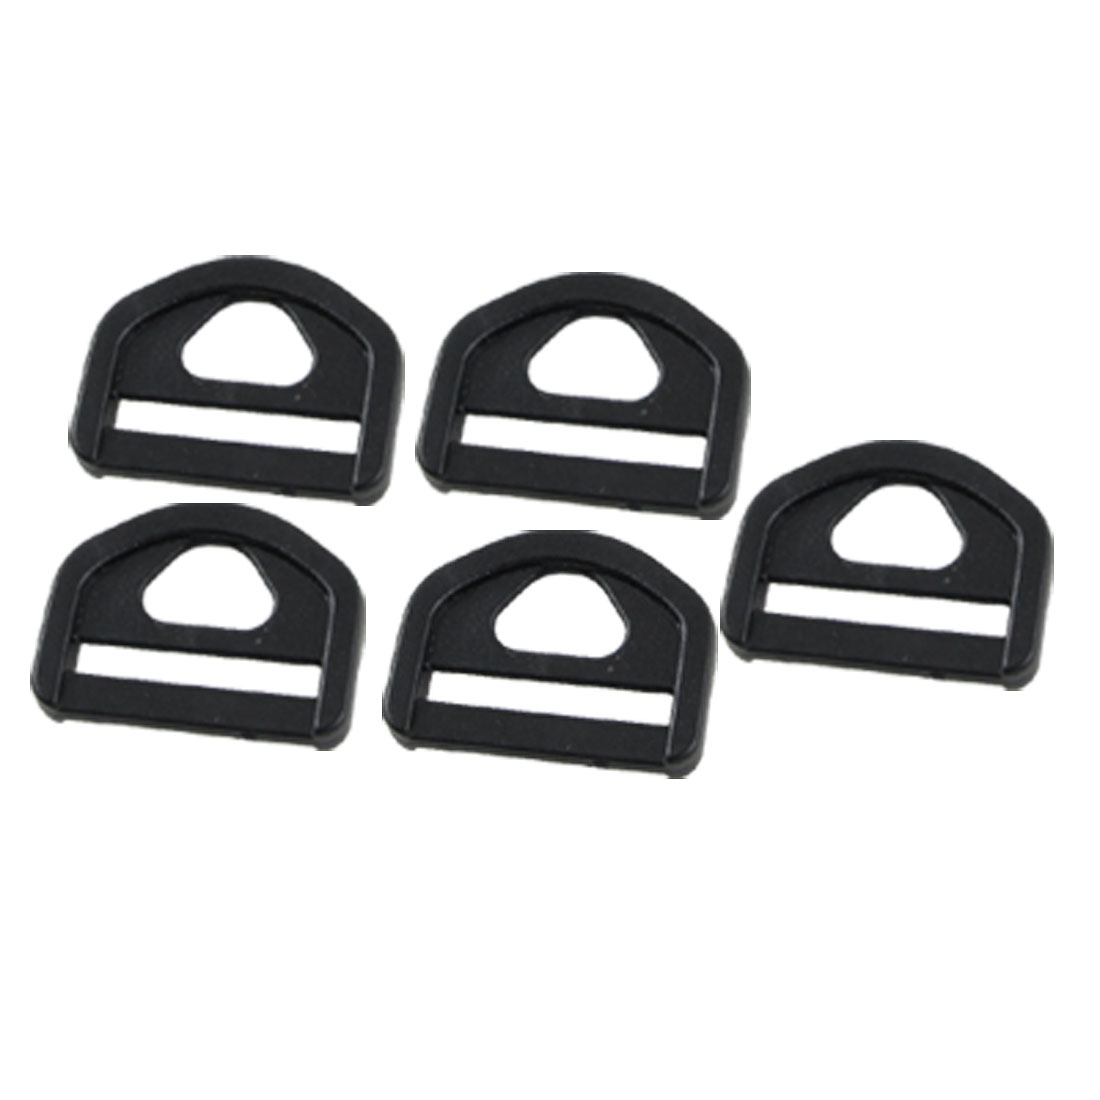 "5 Pcs 1"" Black Glide D Ring Buckle for Webbing Strapping"